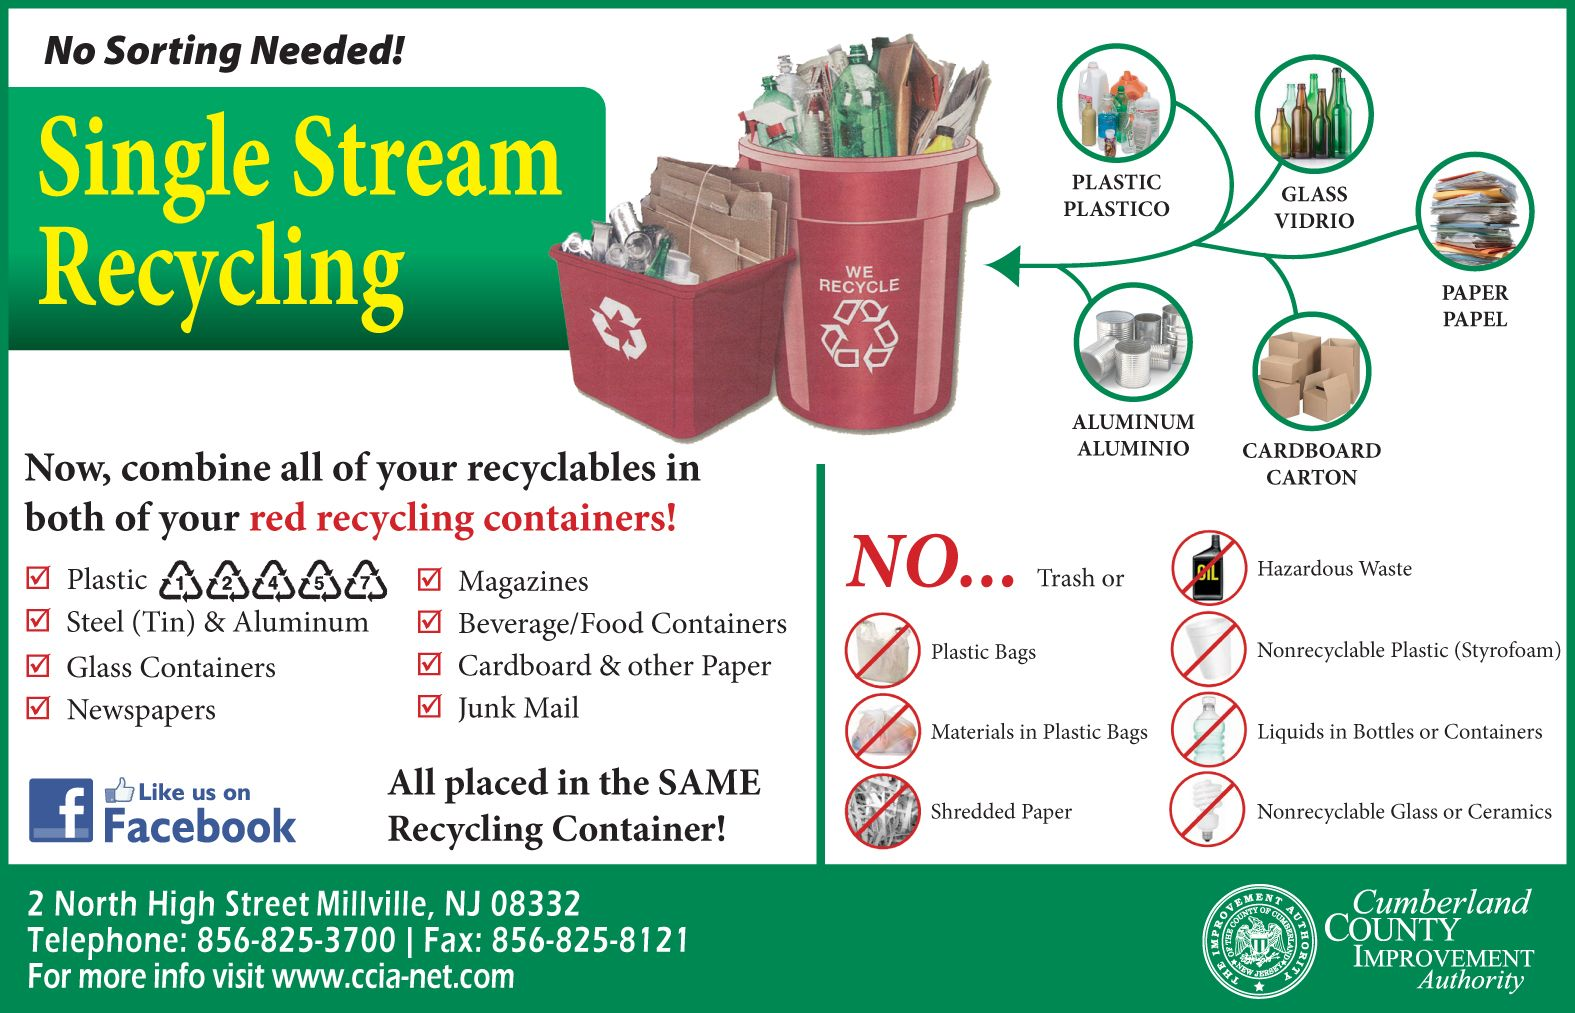 To all Cumberland County Residents: Click here to learn more about single stream recycling!